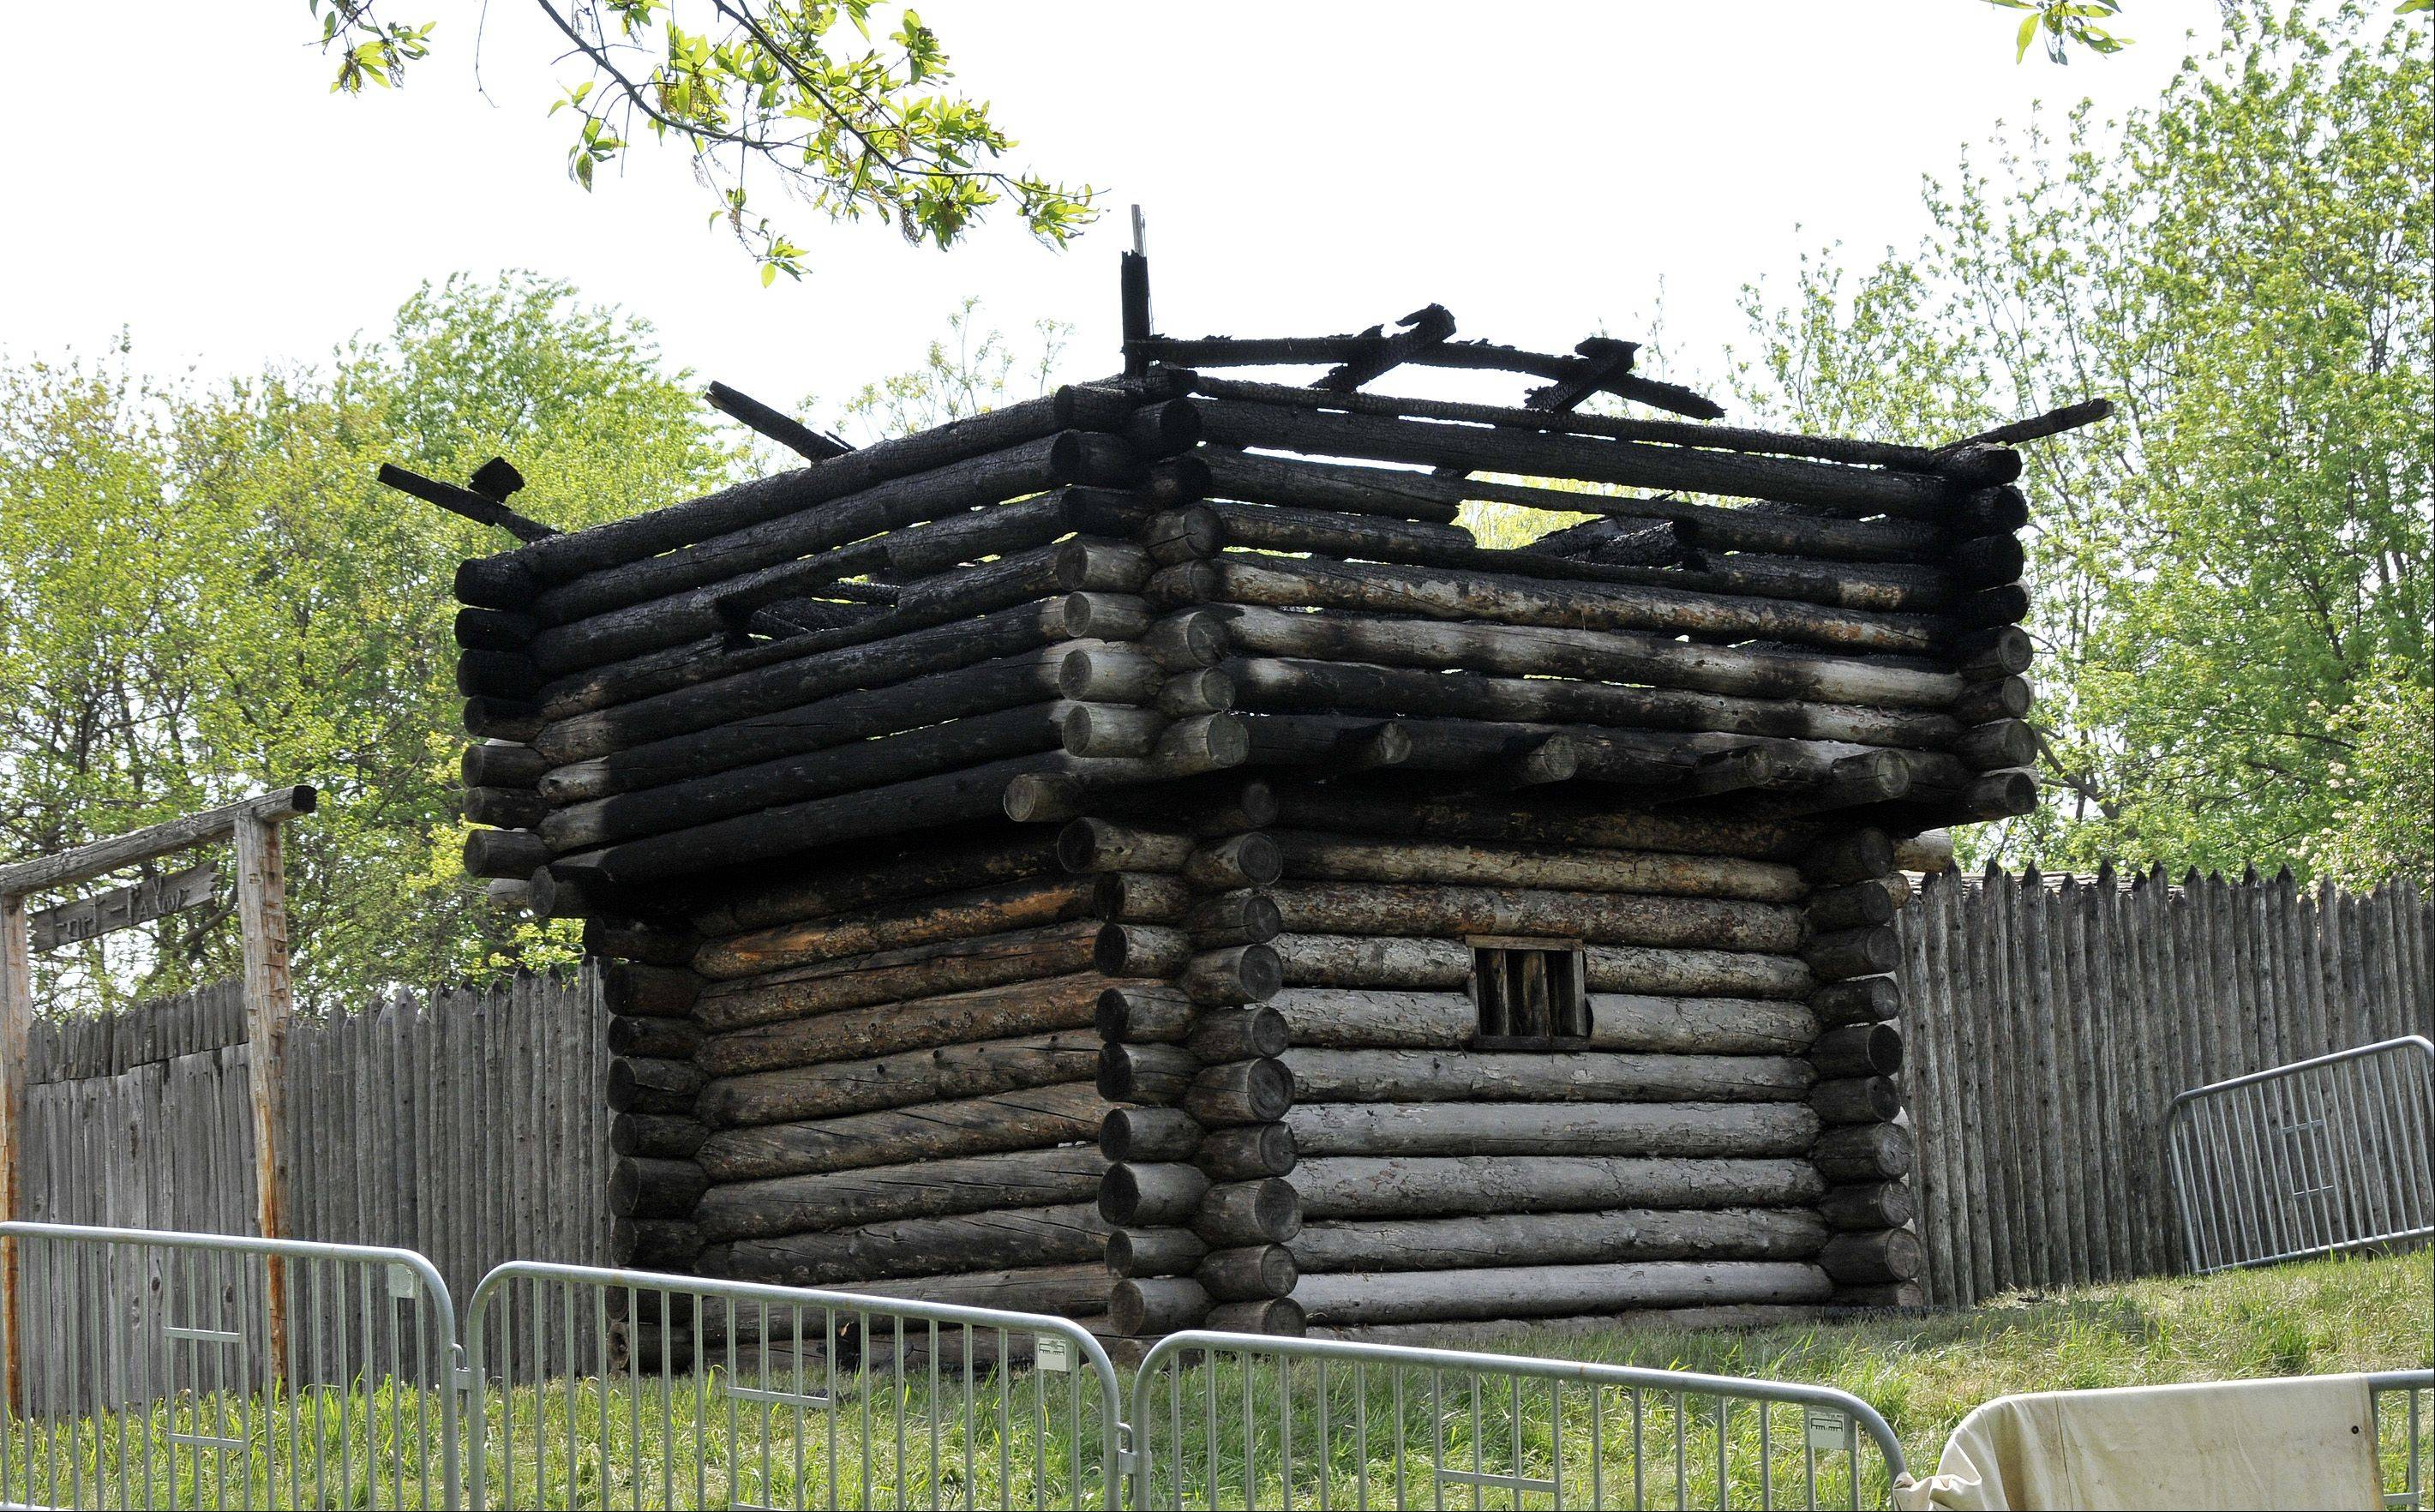 The fire-damaged blockhouse at Naper Settlement�s Fort Payne will likely be demolished and replaced with stockade fencing. Naper Settlement officials are unsure if and when it would be replaced.